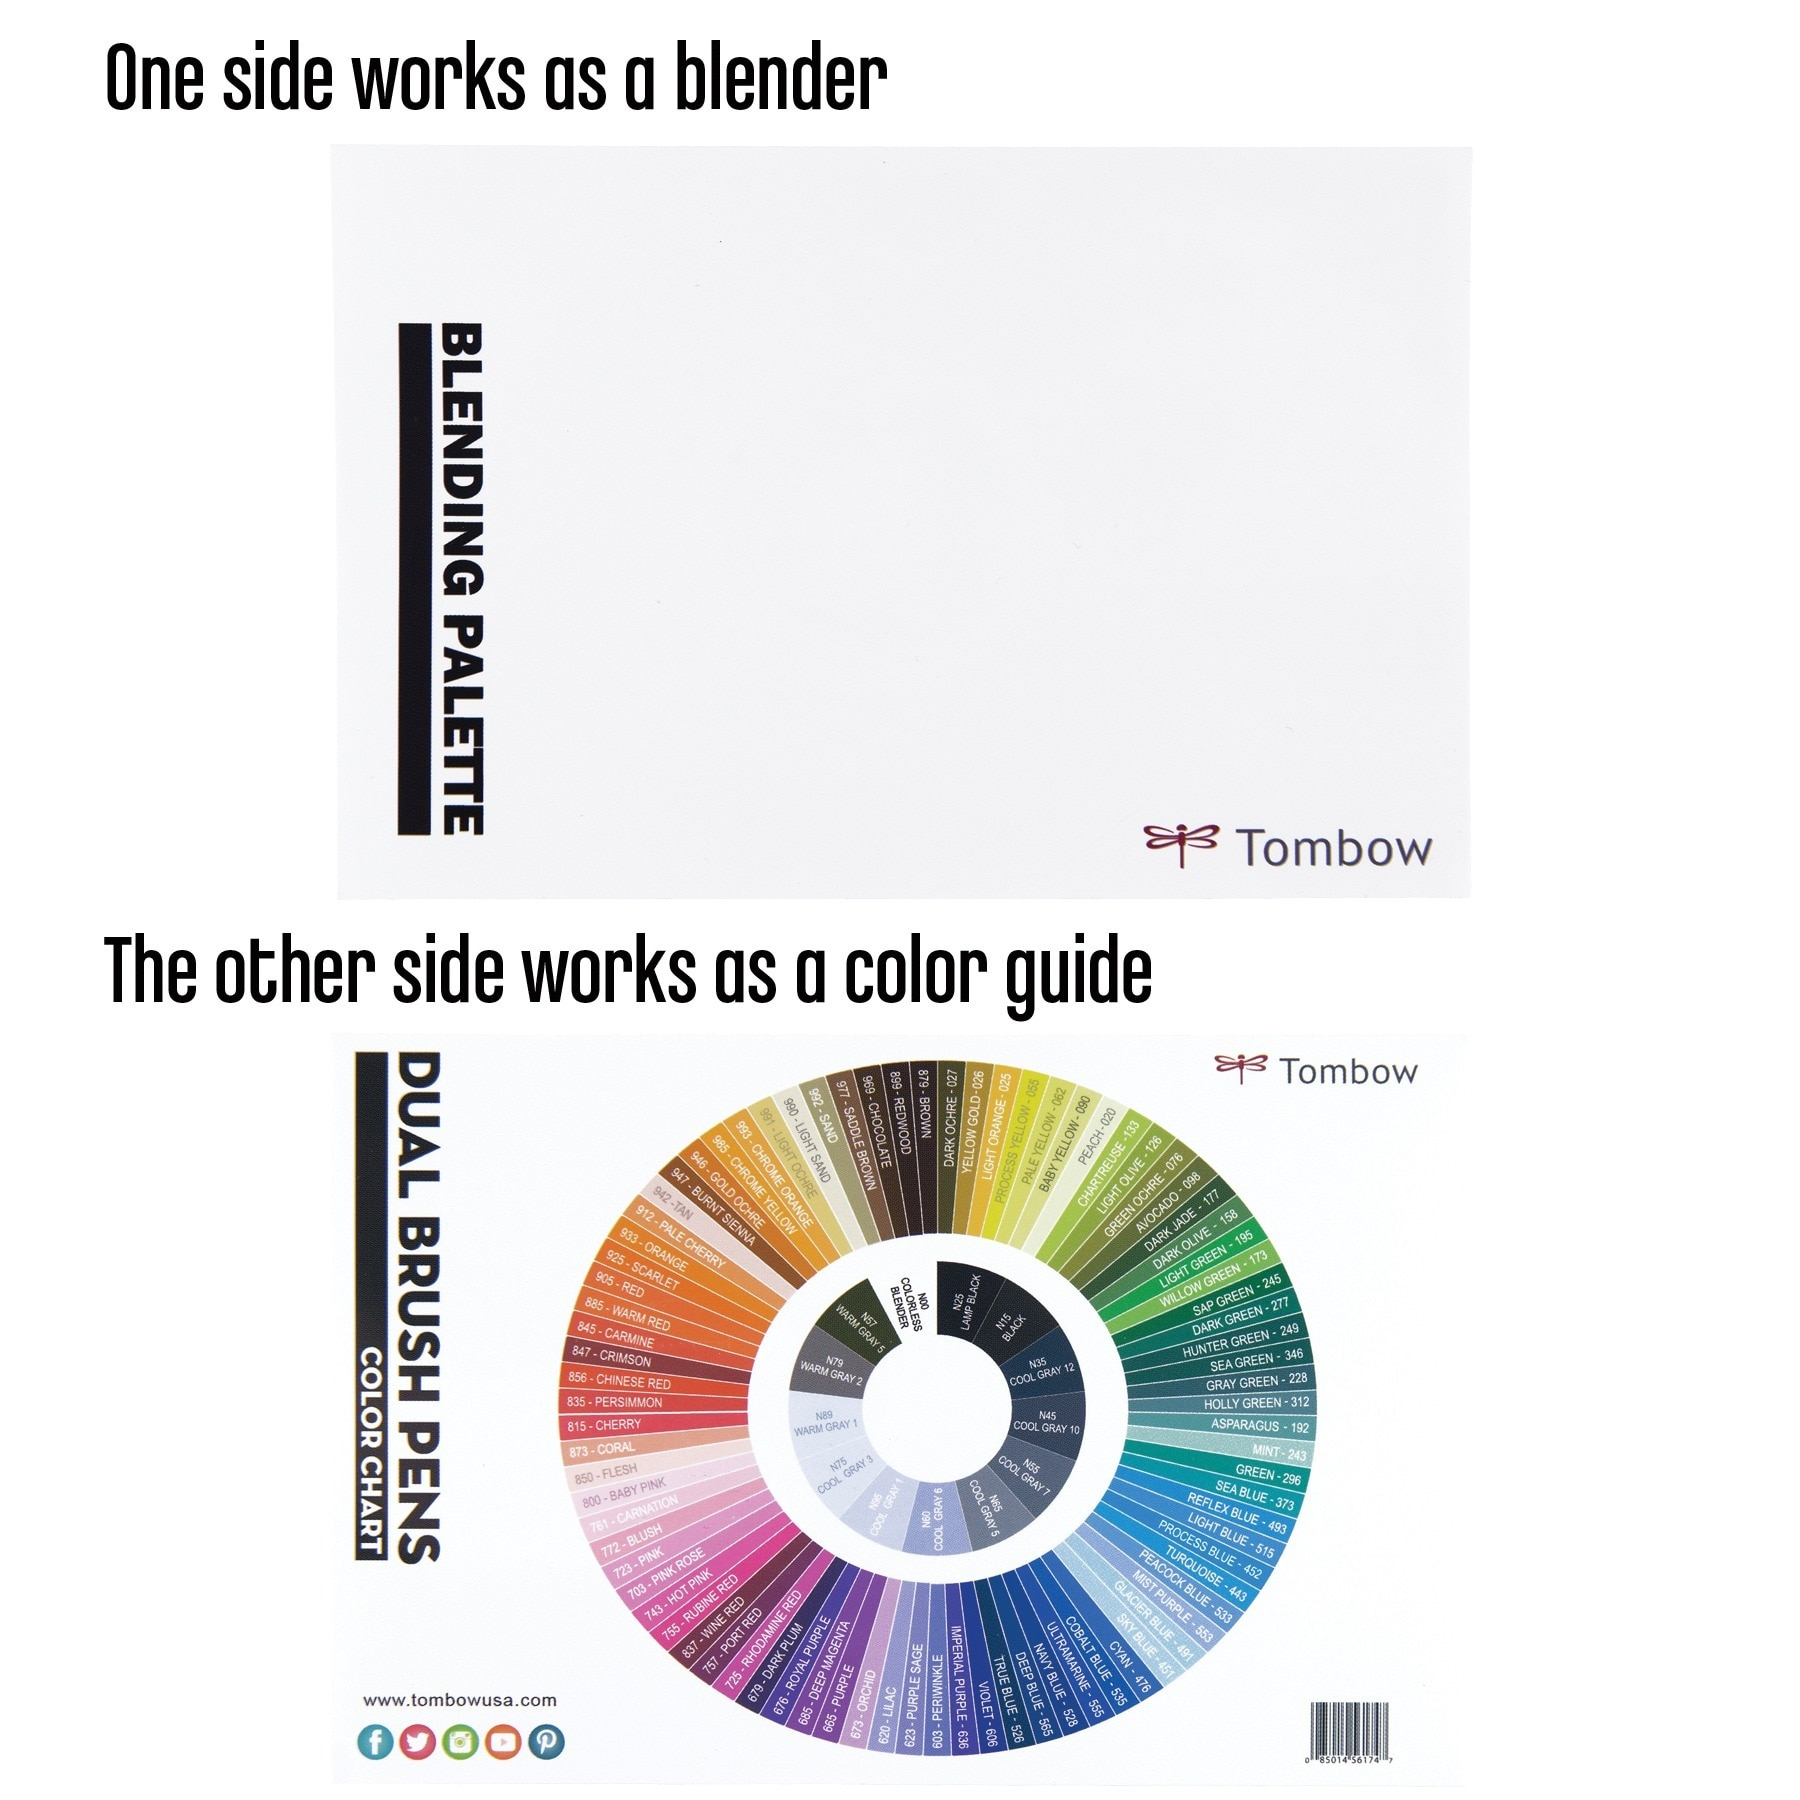 Pearl white color chart gallery free any chart examples pearl white color chart gallery free any chart examples pearl white color chart images free any nvjuhfo Gallery